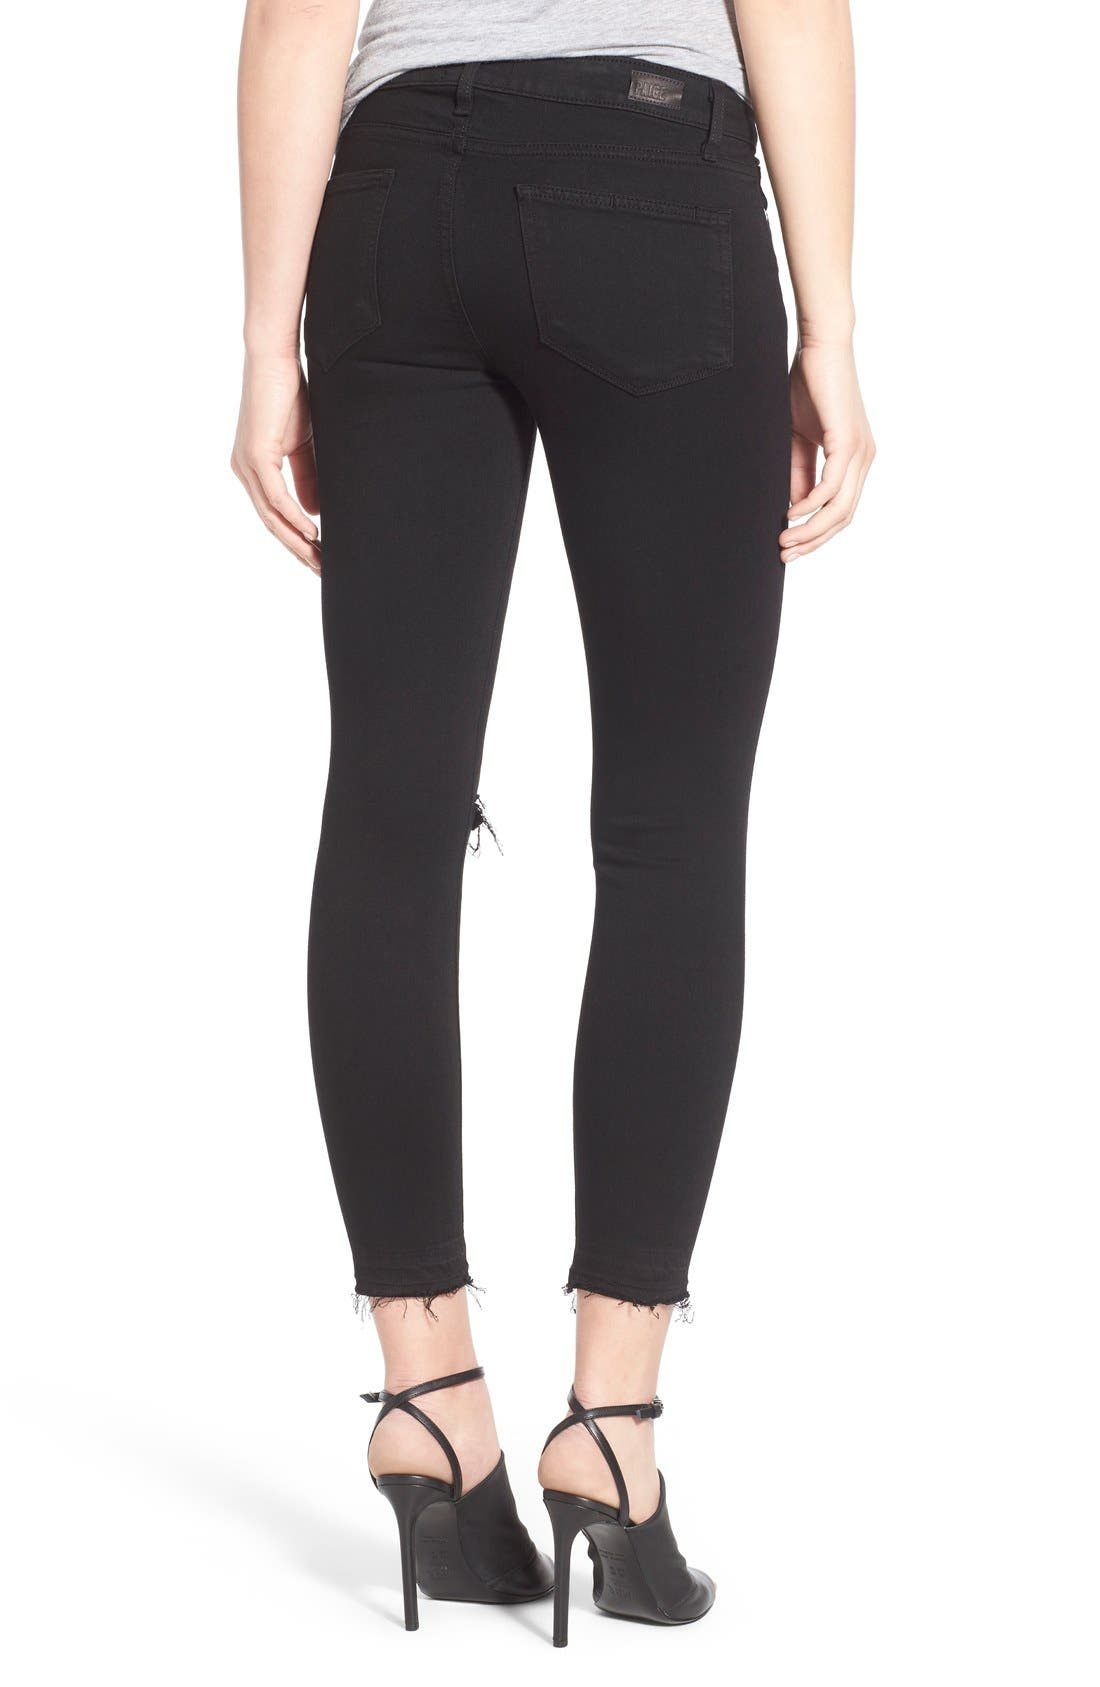 Transcend - Verdugo Crop Skinny Jeans,                             Alternate thumbnail 3, color,                             001